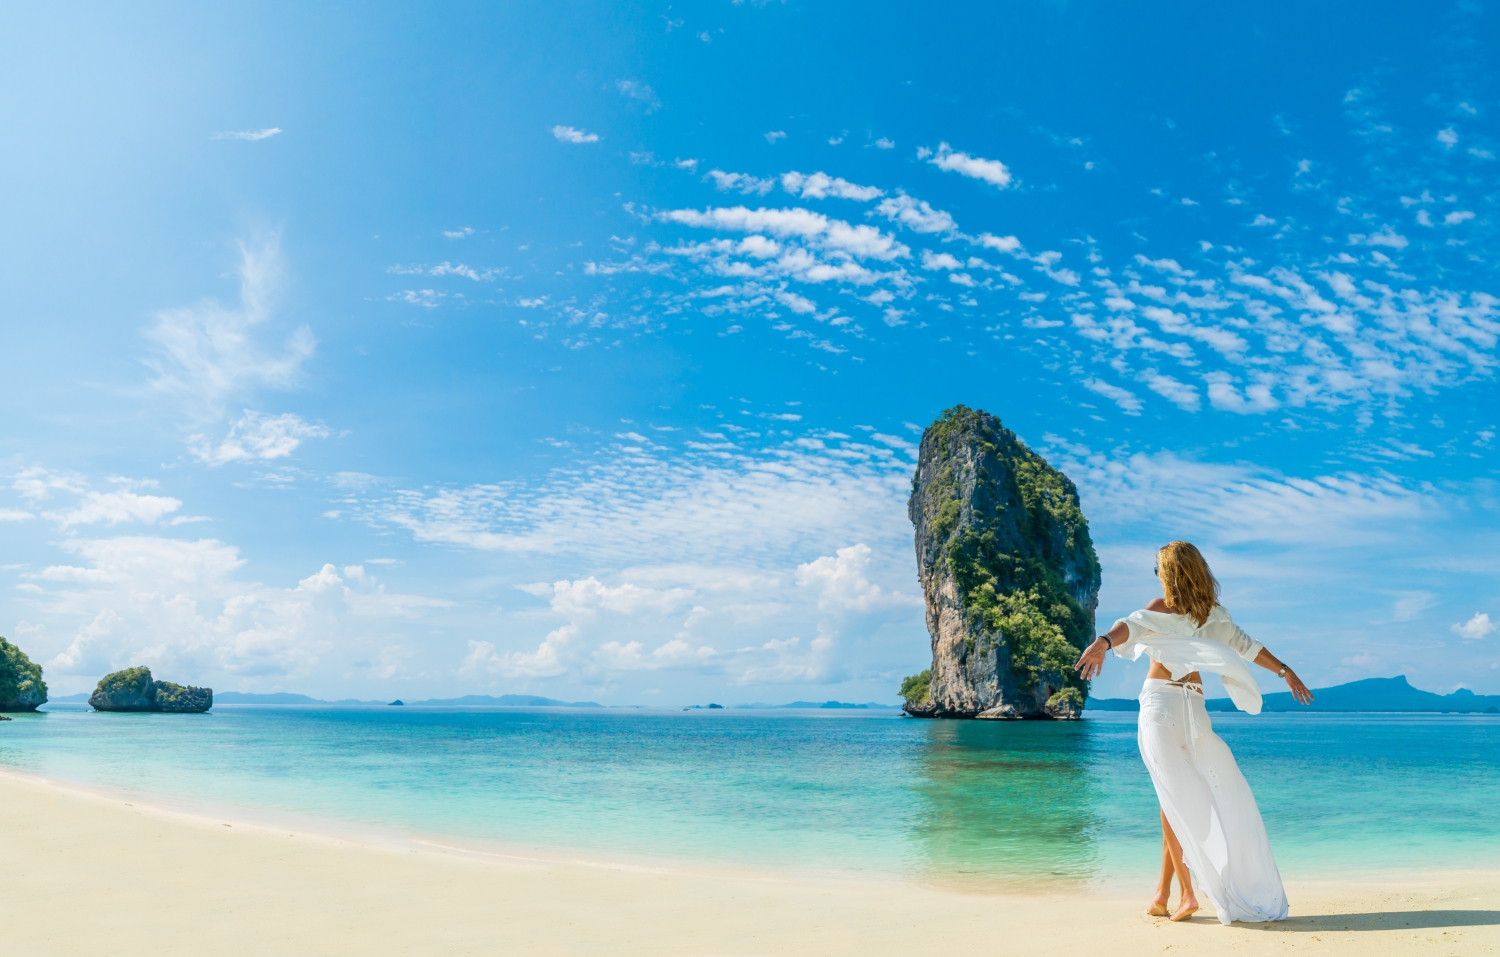 Going Solo A Girl S 3d2n Trip To Krabi Thailand Happenings